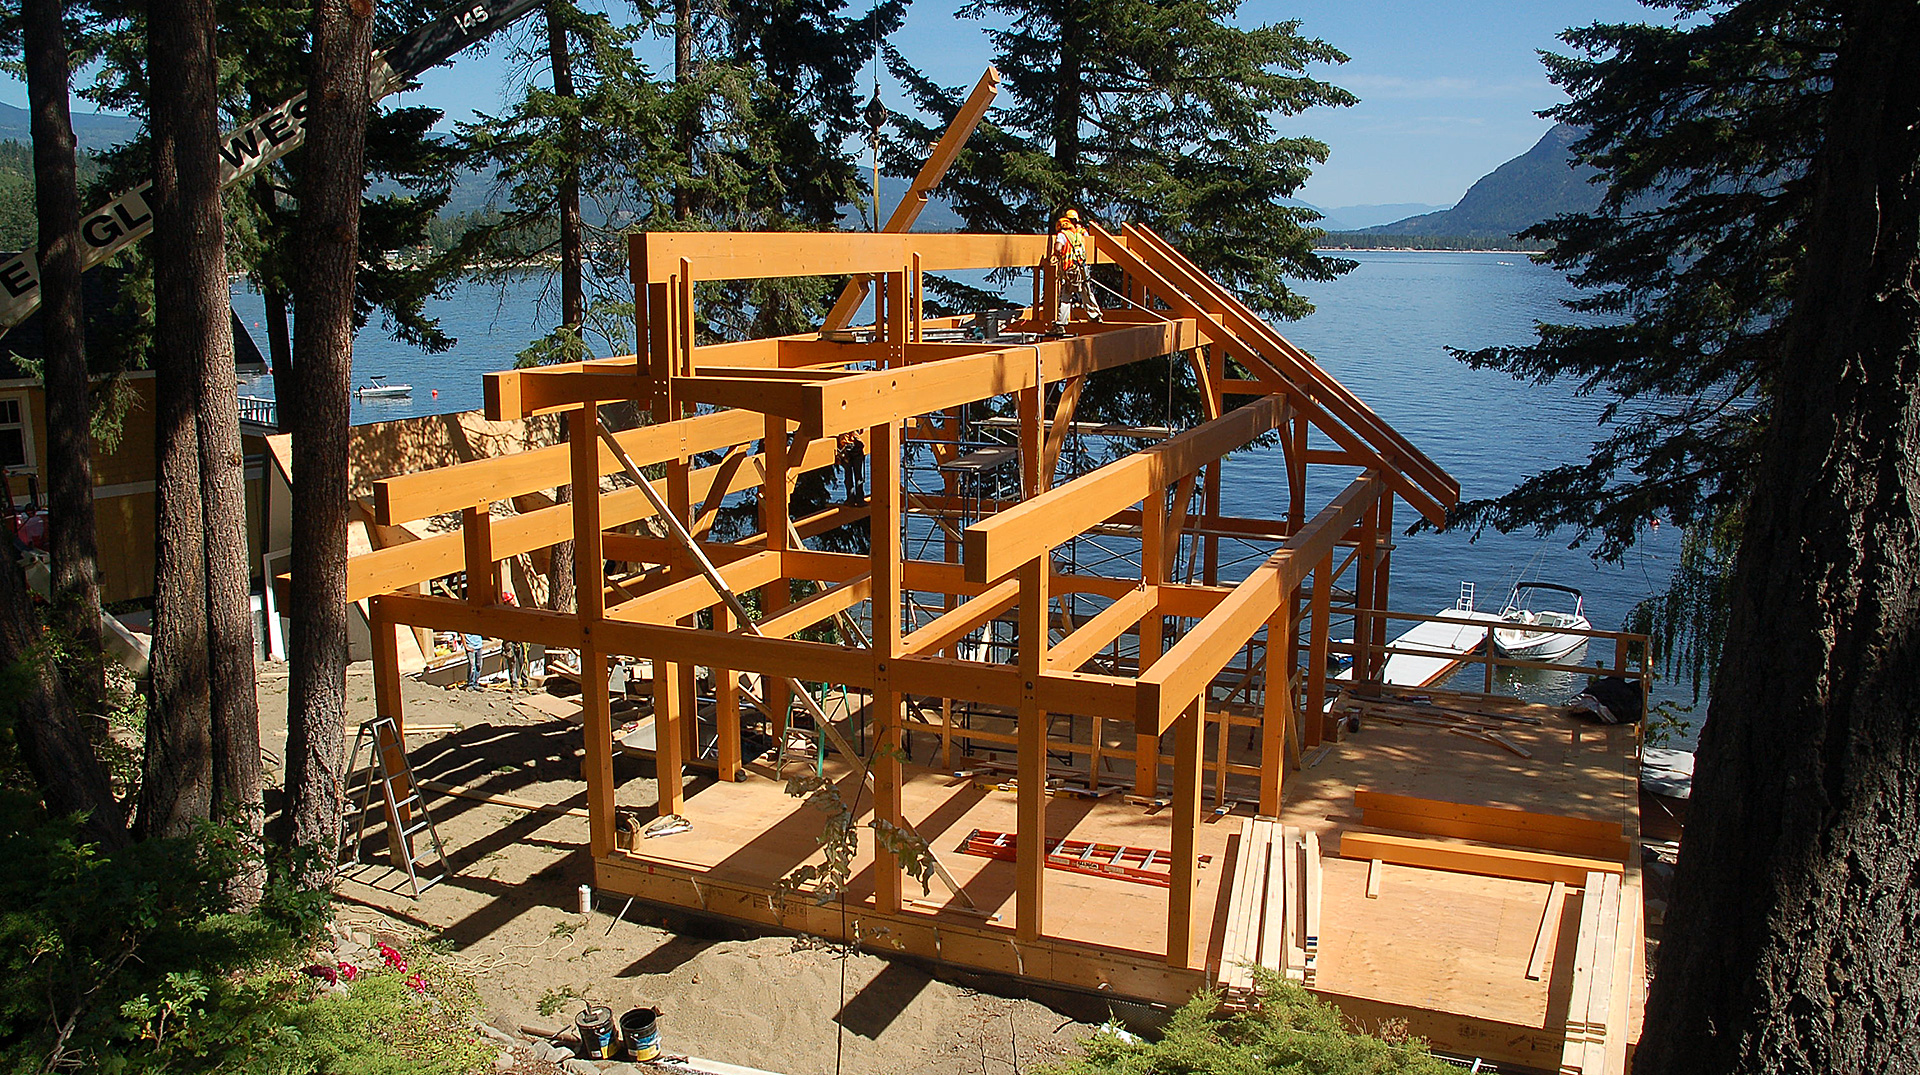 timber frame under contstrucion